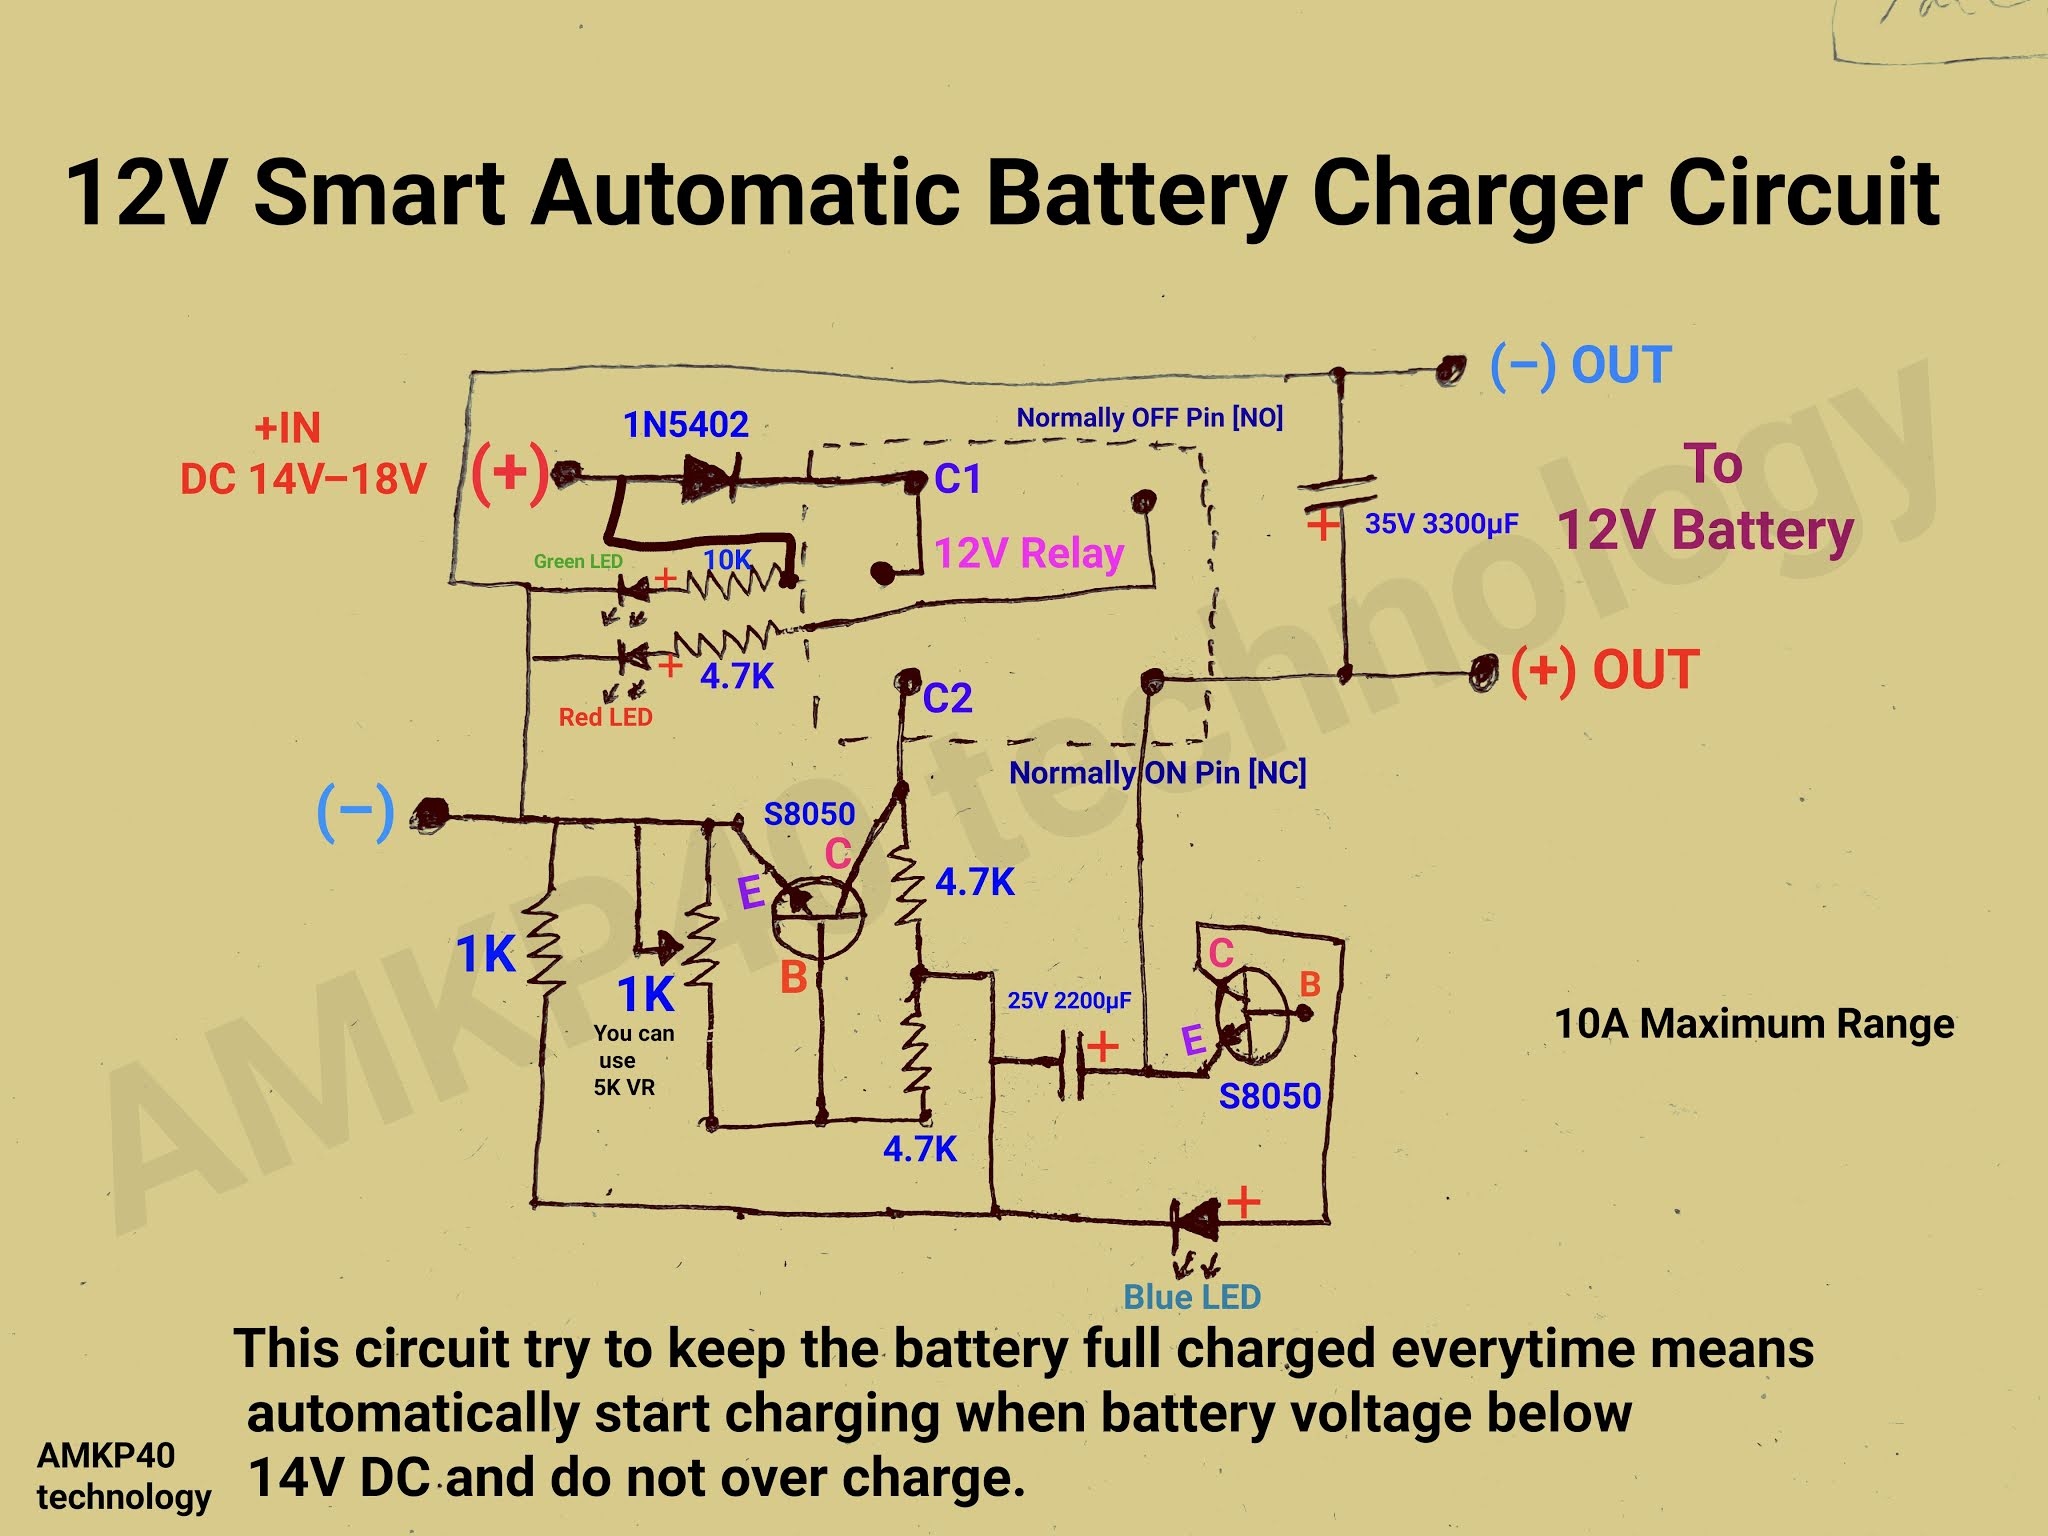 How To Make 12v Smart Automatic Battery Charger Circuit With Auto Start Charging Function